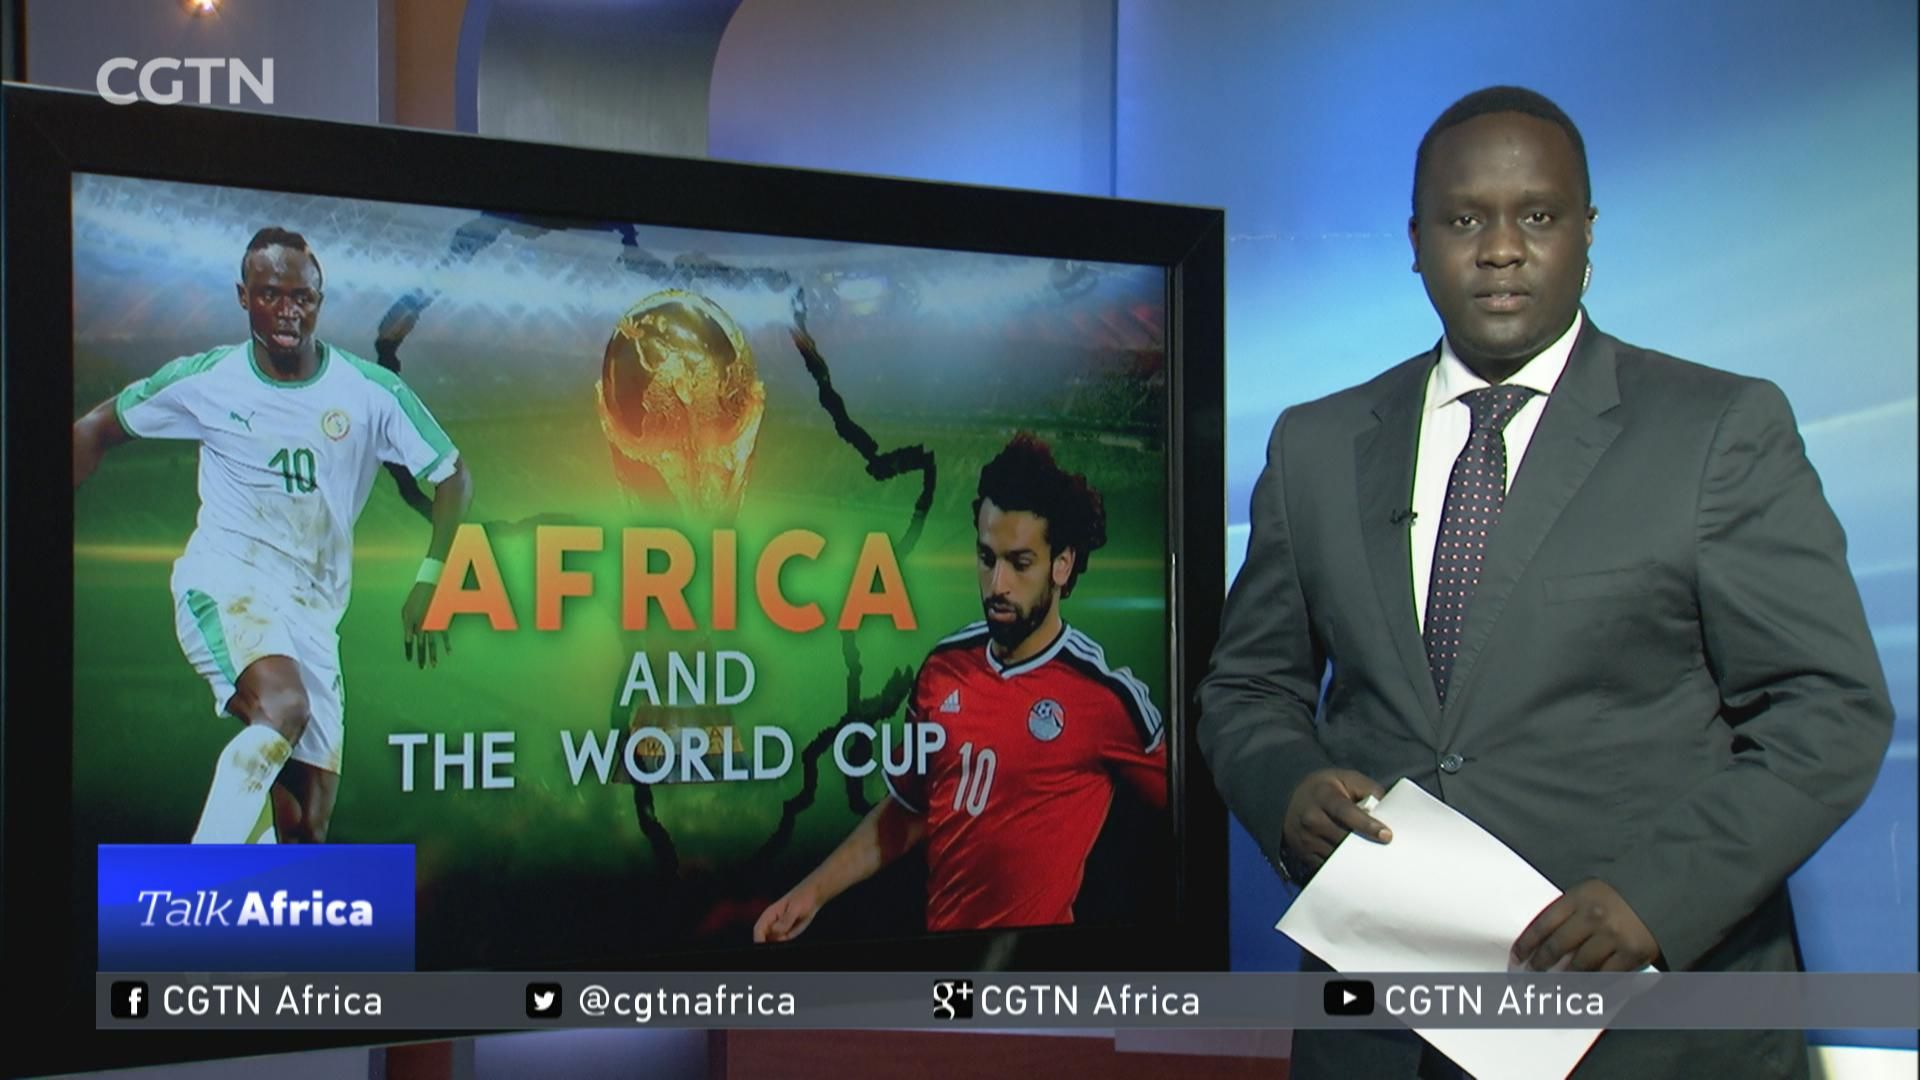 Talk Africa: Africa and the World Cup